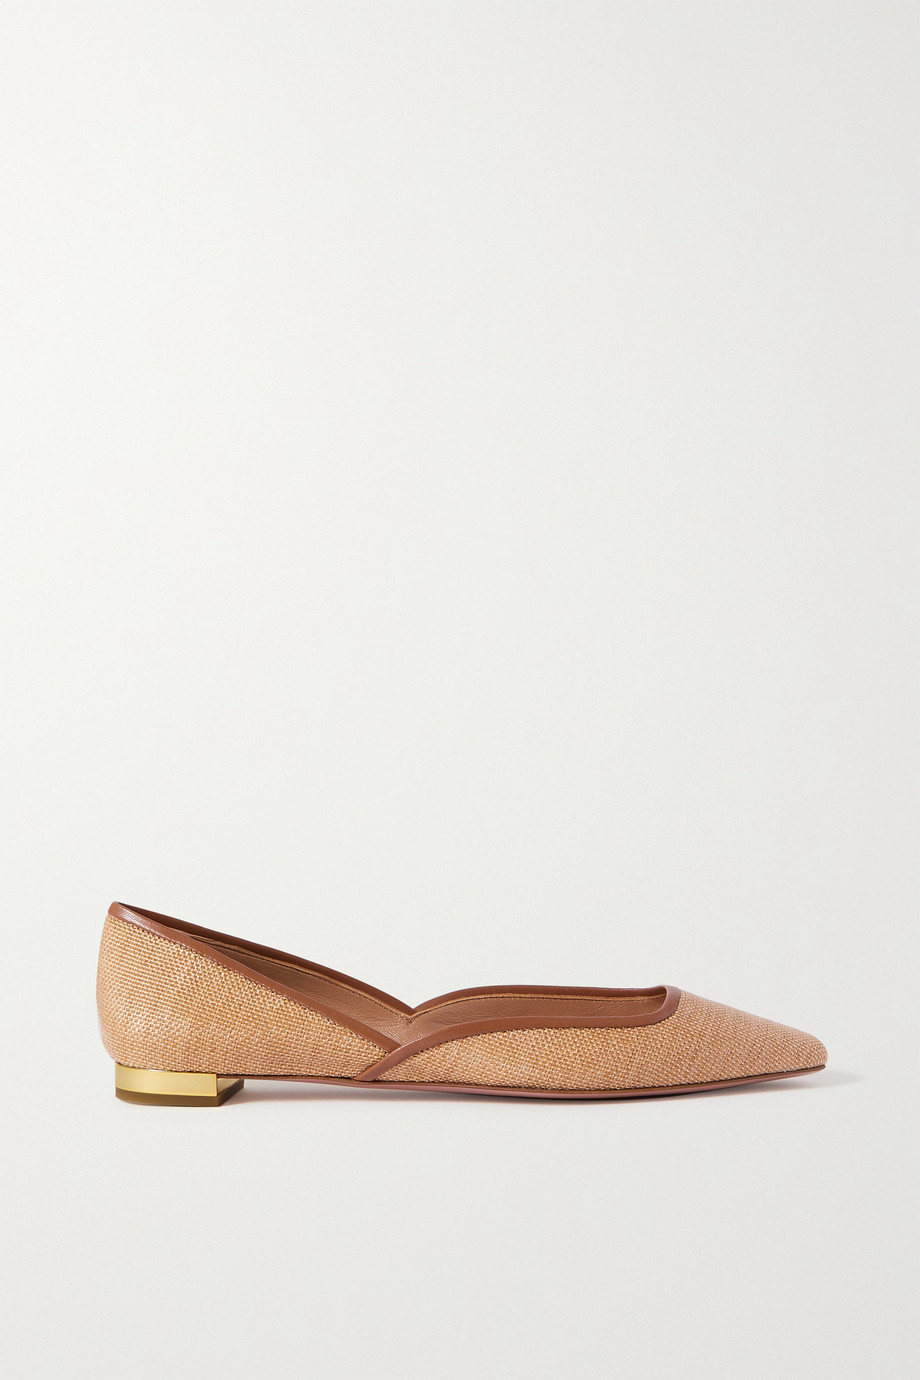 AQUAZZURA Maia leather-trimmed raffia ballet flats